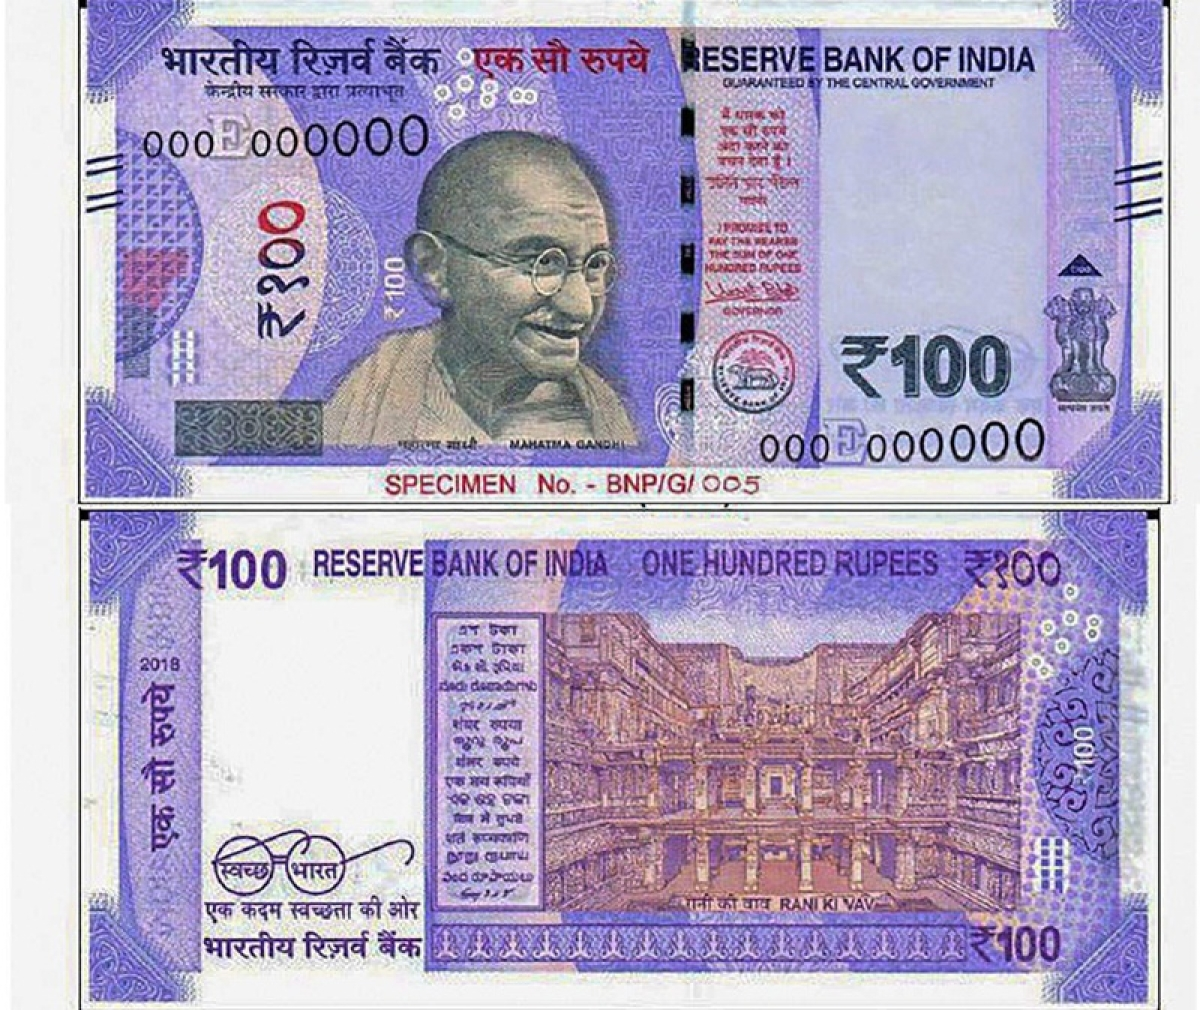 Reality check on new Rs 100 note: Here's how you can check whether the note is Real or Fake